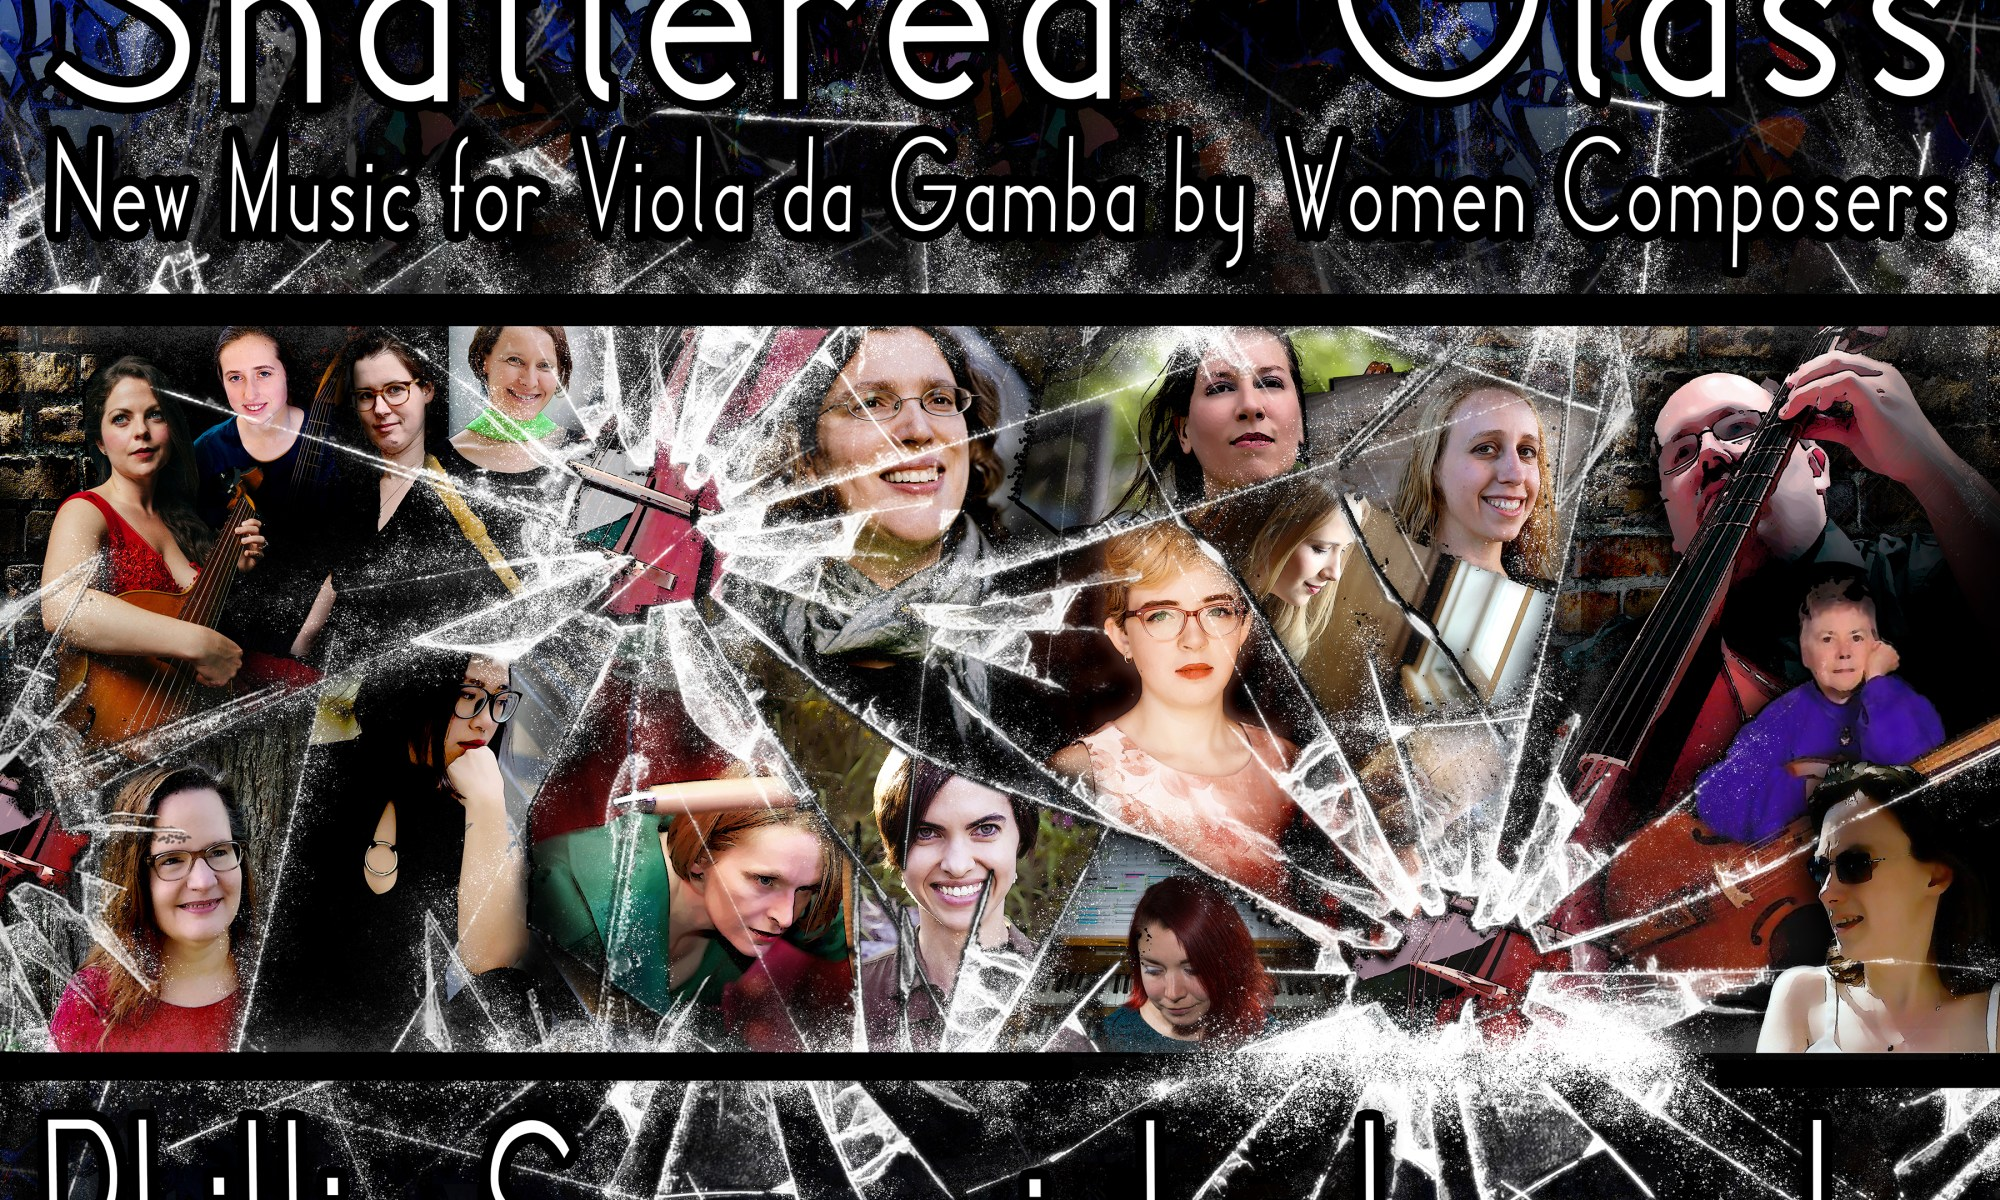 Shattered Glass - New Music by Women Composers